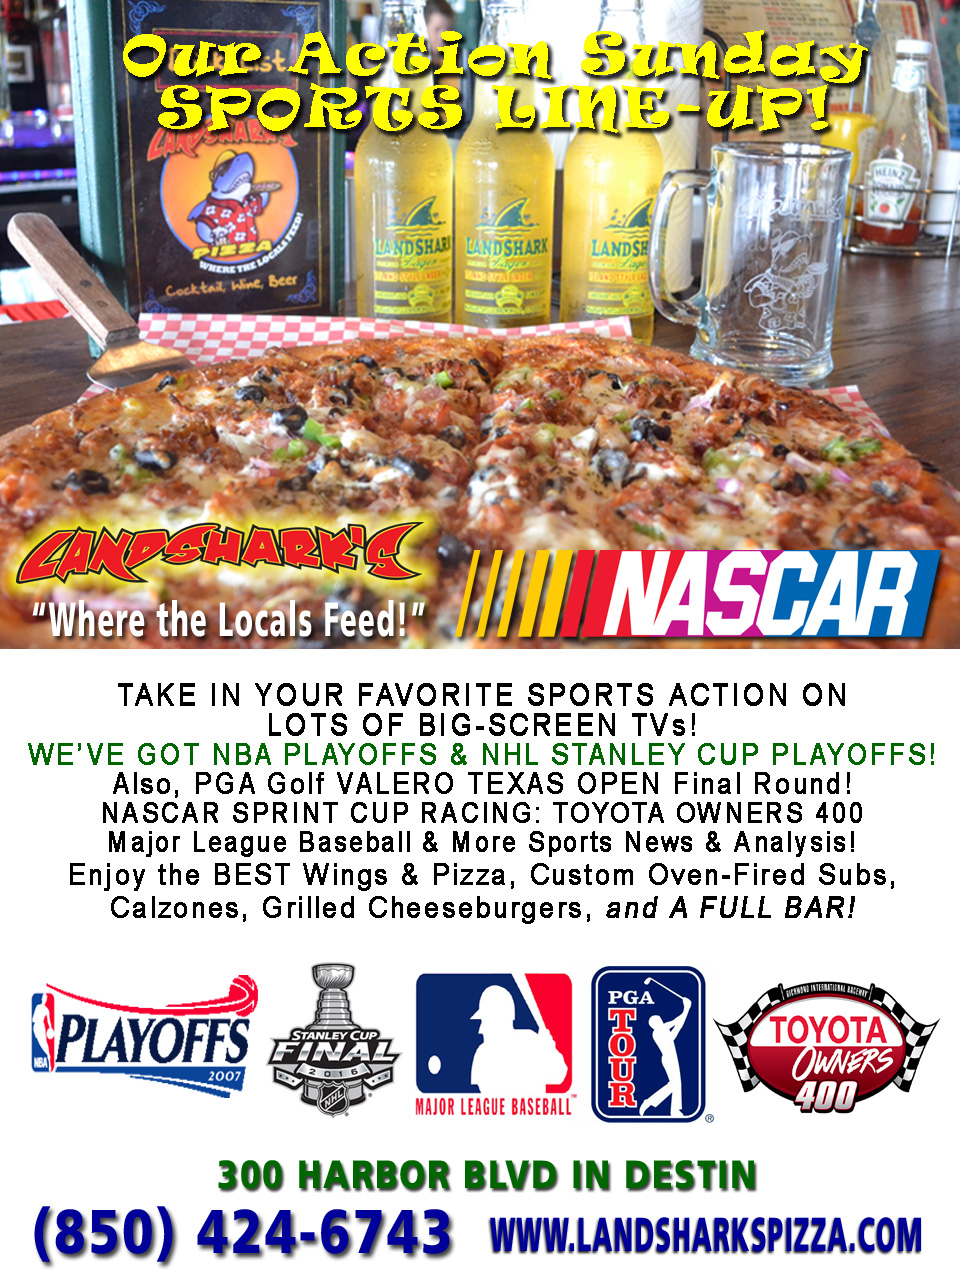 Destin FL Sunday Sports Action at Landsharks Pizza Company